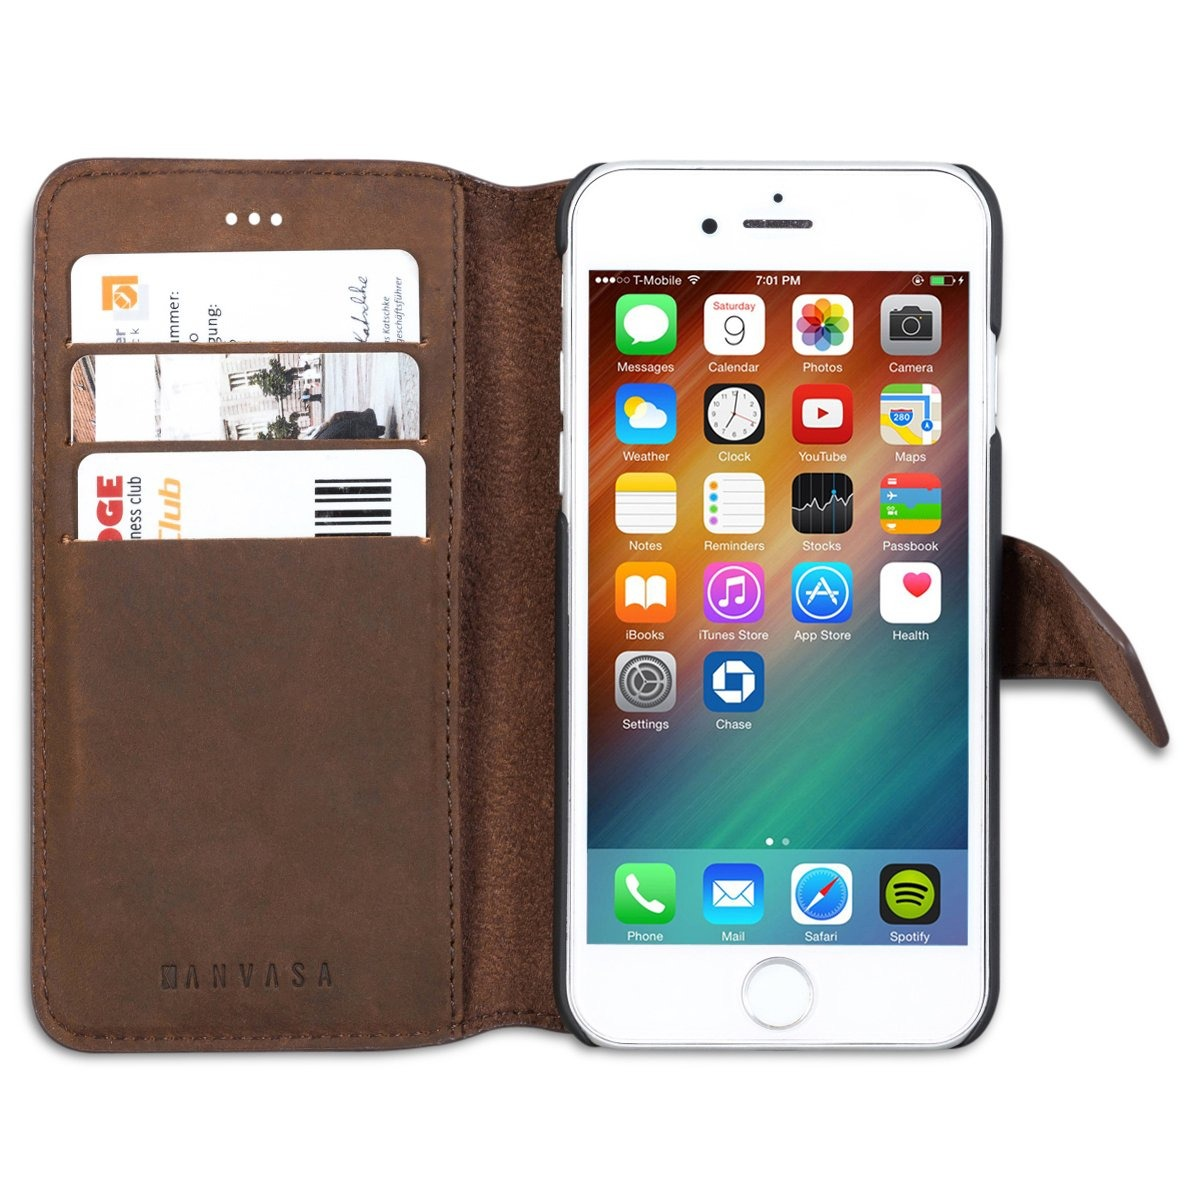 the latest ace15 58e92 iPhone 6 / 6s Leather Wallet Funda Brown - Kanvasa Vintage